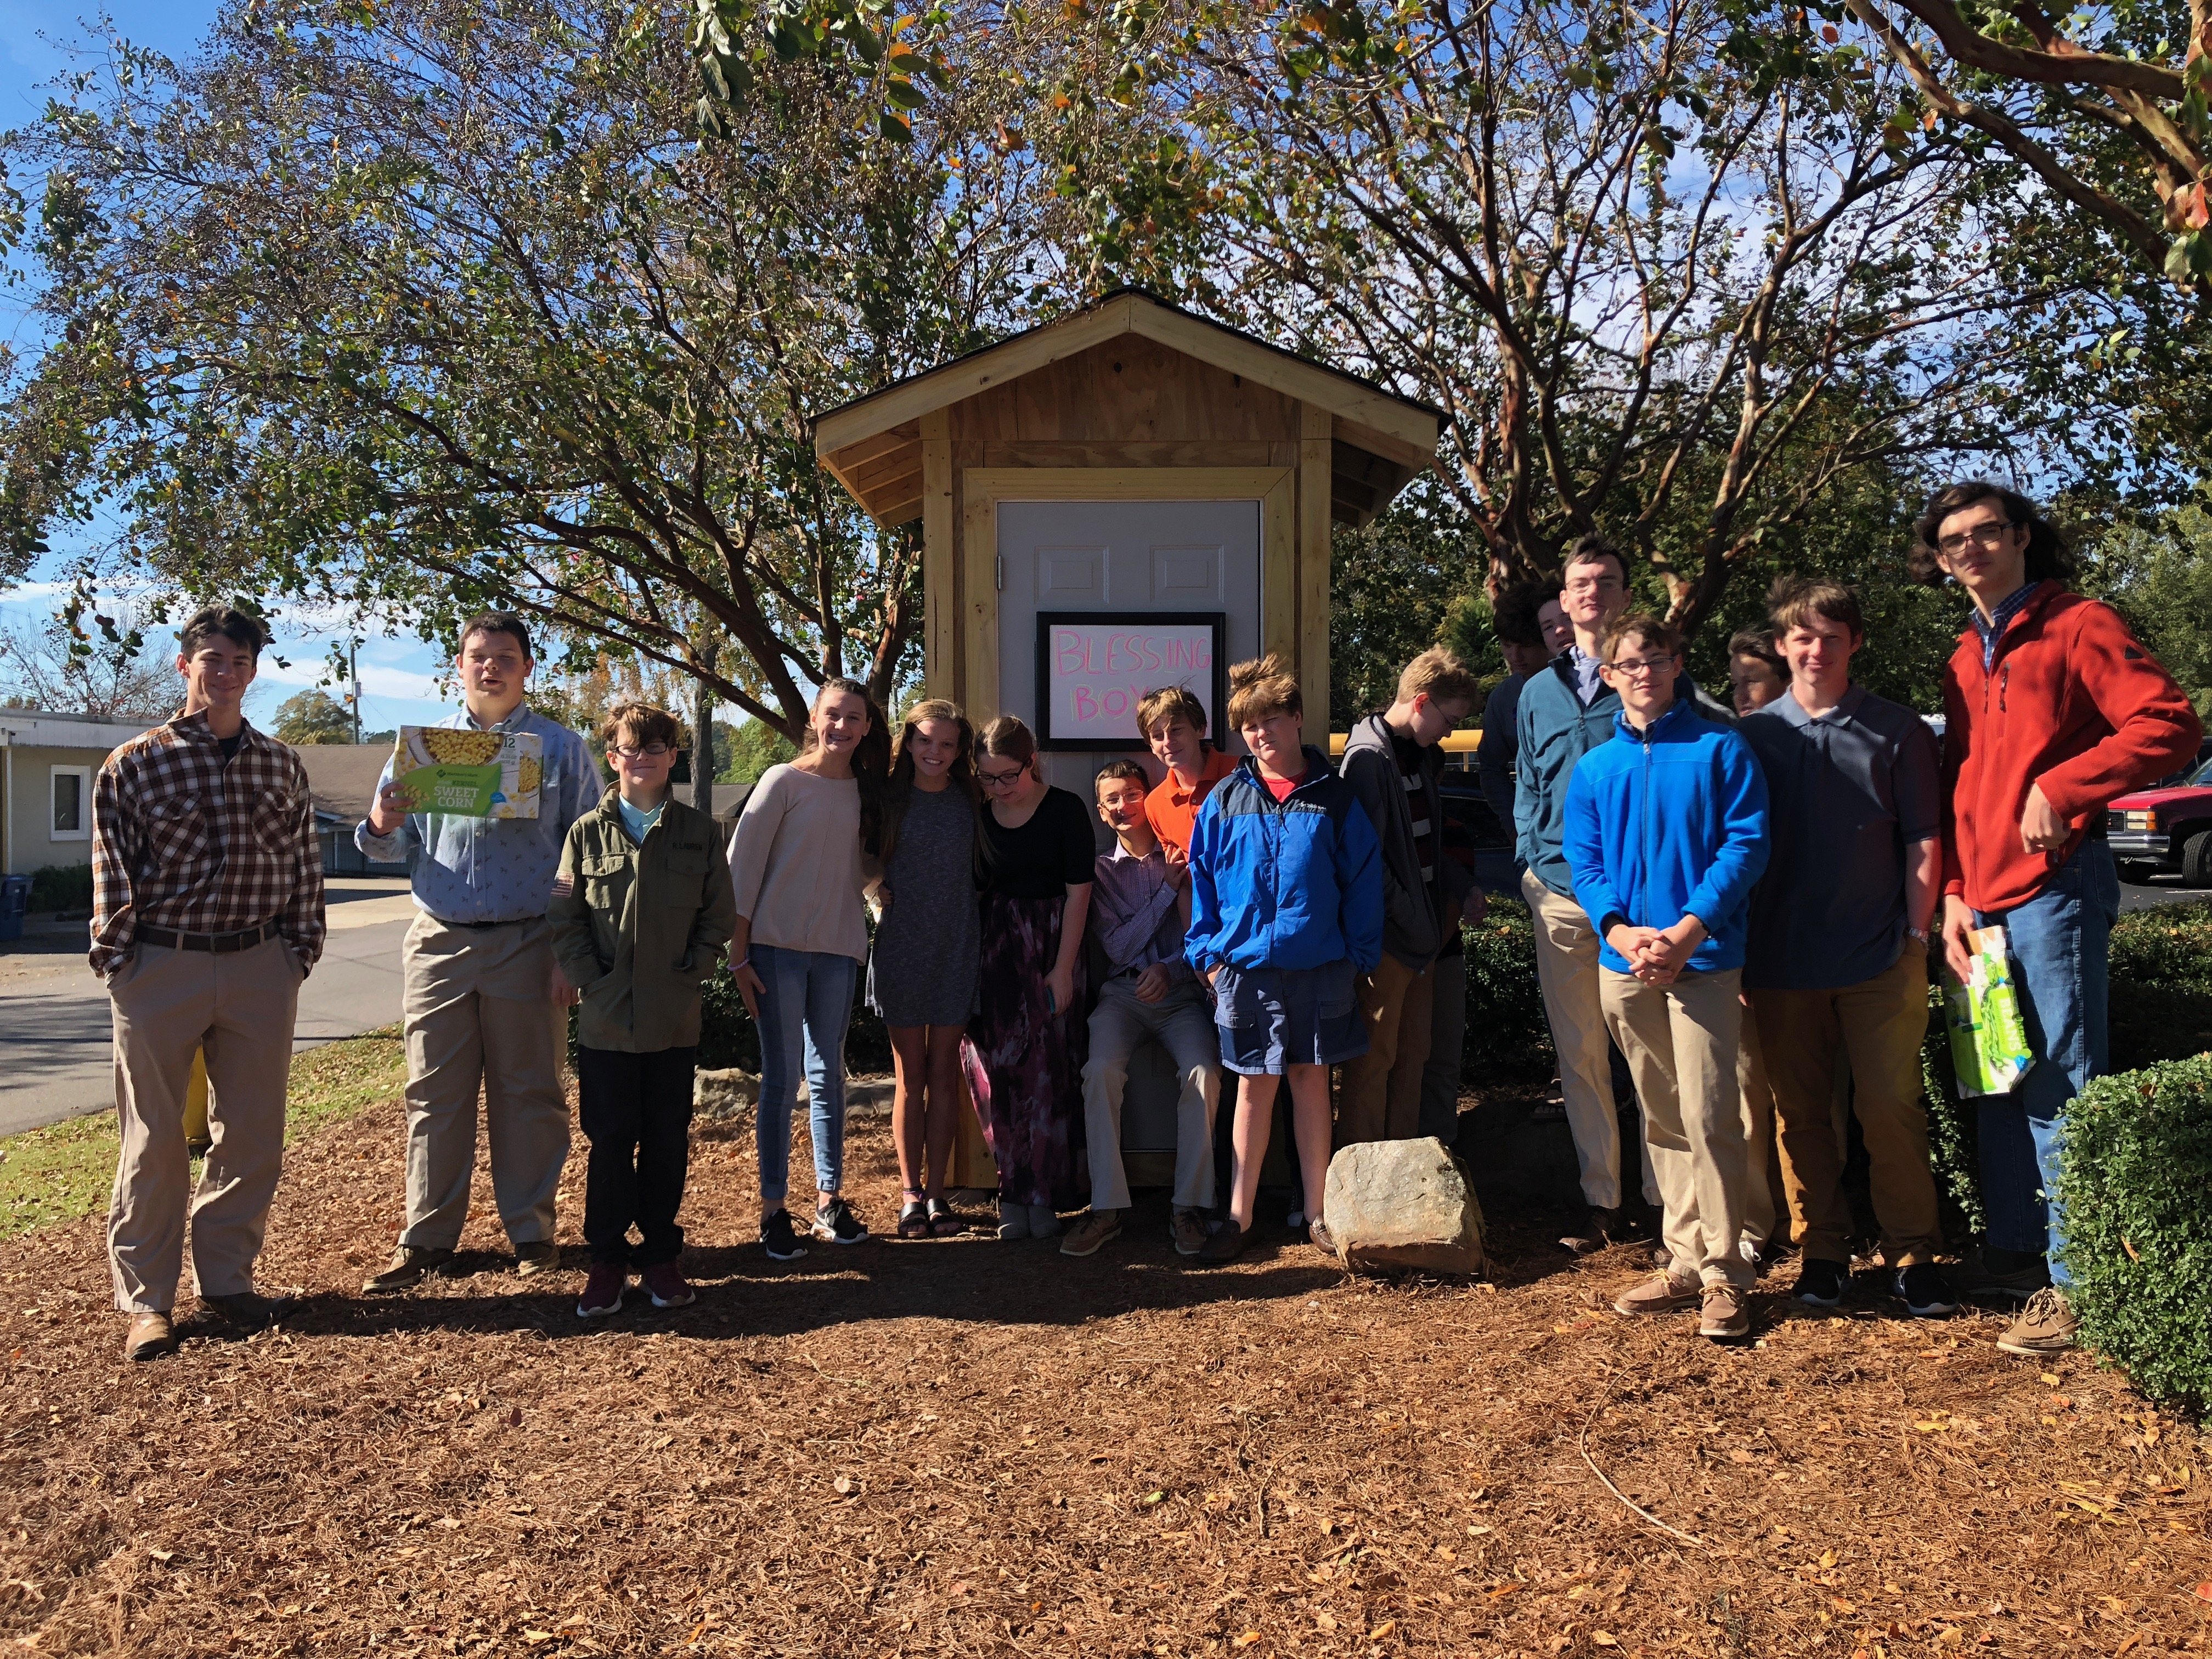 Blessing Box from FUMC youth provides 24/7 access to those in need